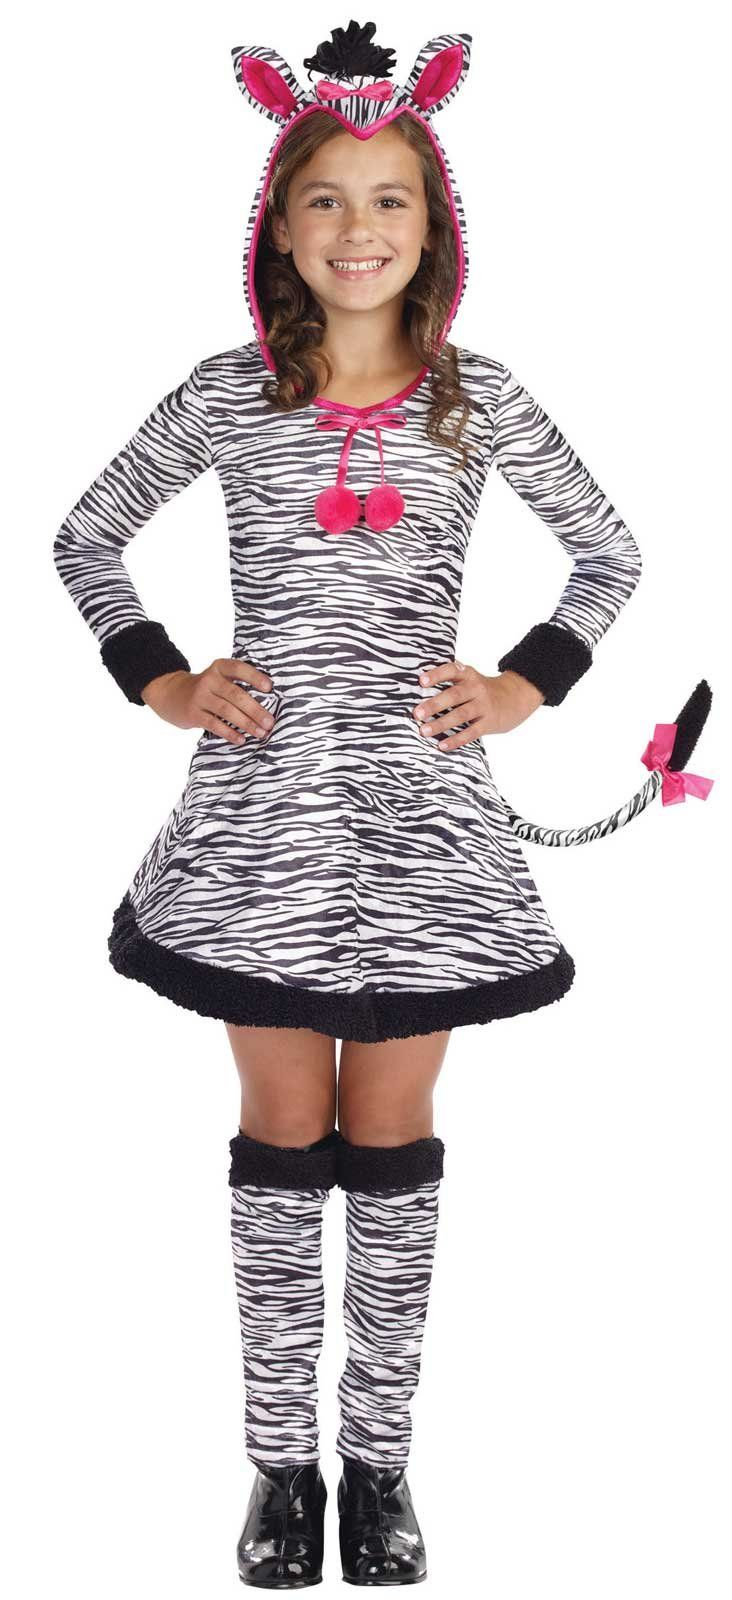 Lilu0027 Wild Thang Zebra Child Costume from BuyCostumes.com  sc 1 st  Pinterest & Zebra Child Costume | Pinterest | Children costumes Costumes and ...